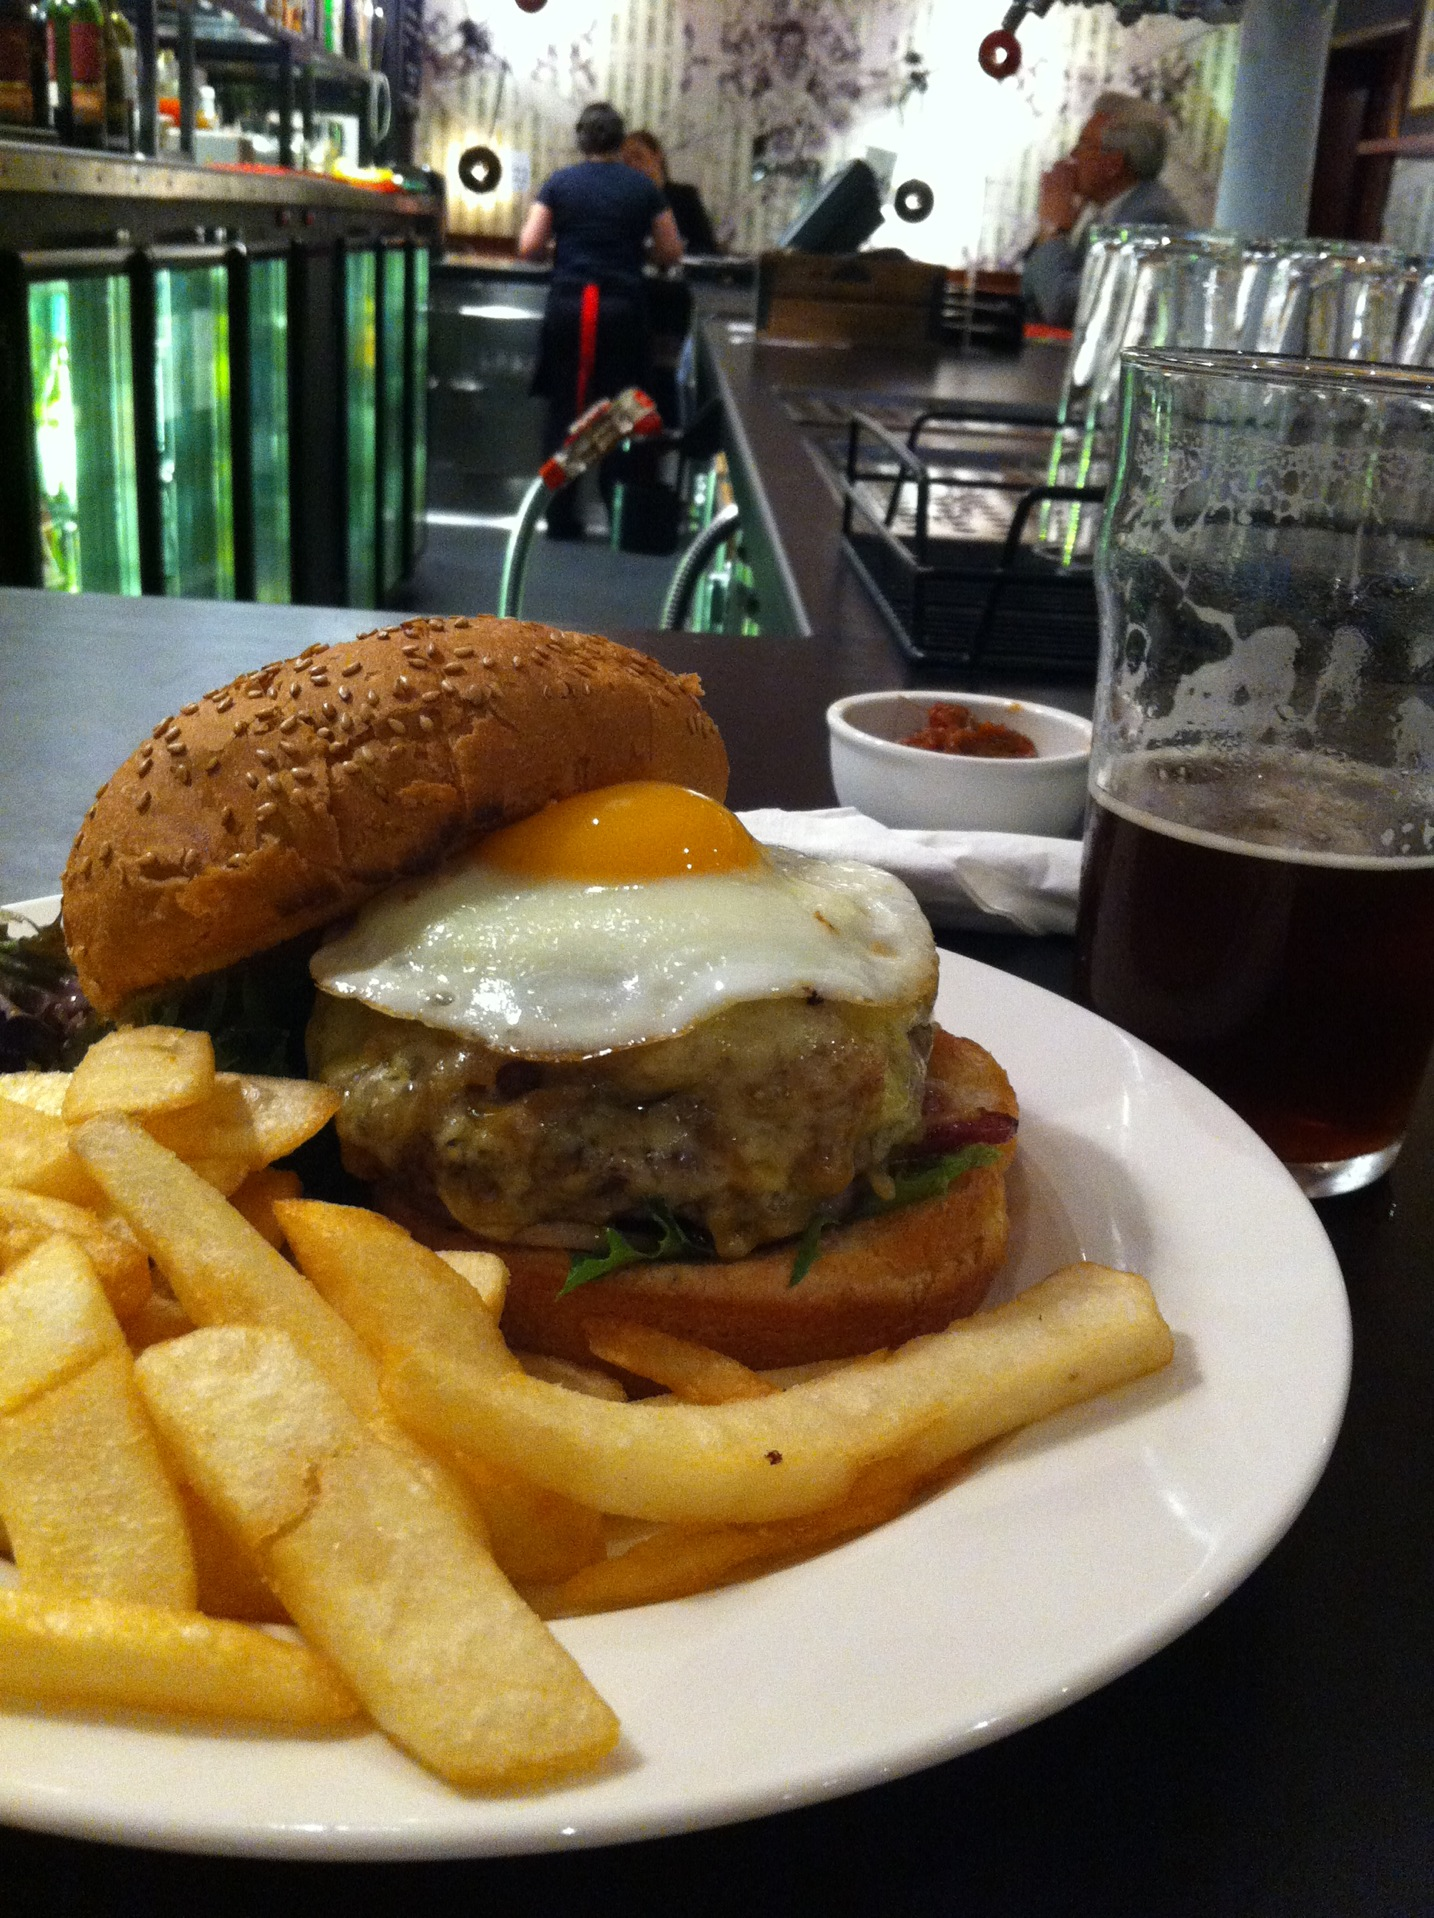 The Cricketers Bar at Hotel Windsor | 111 SPRING Street, Melbourne, Victoria 3000 | +61 3 9633 6000